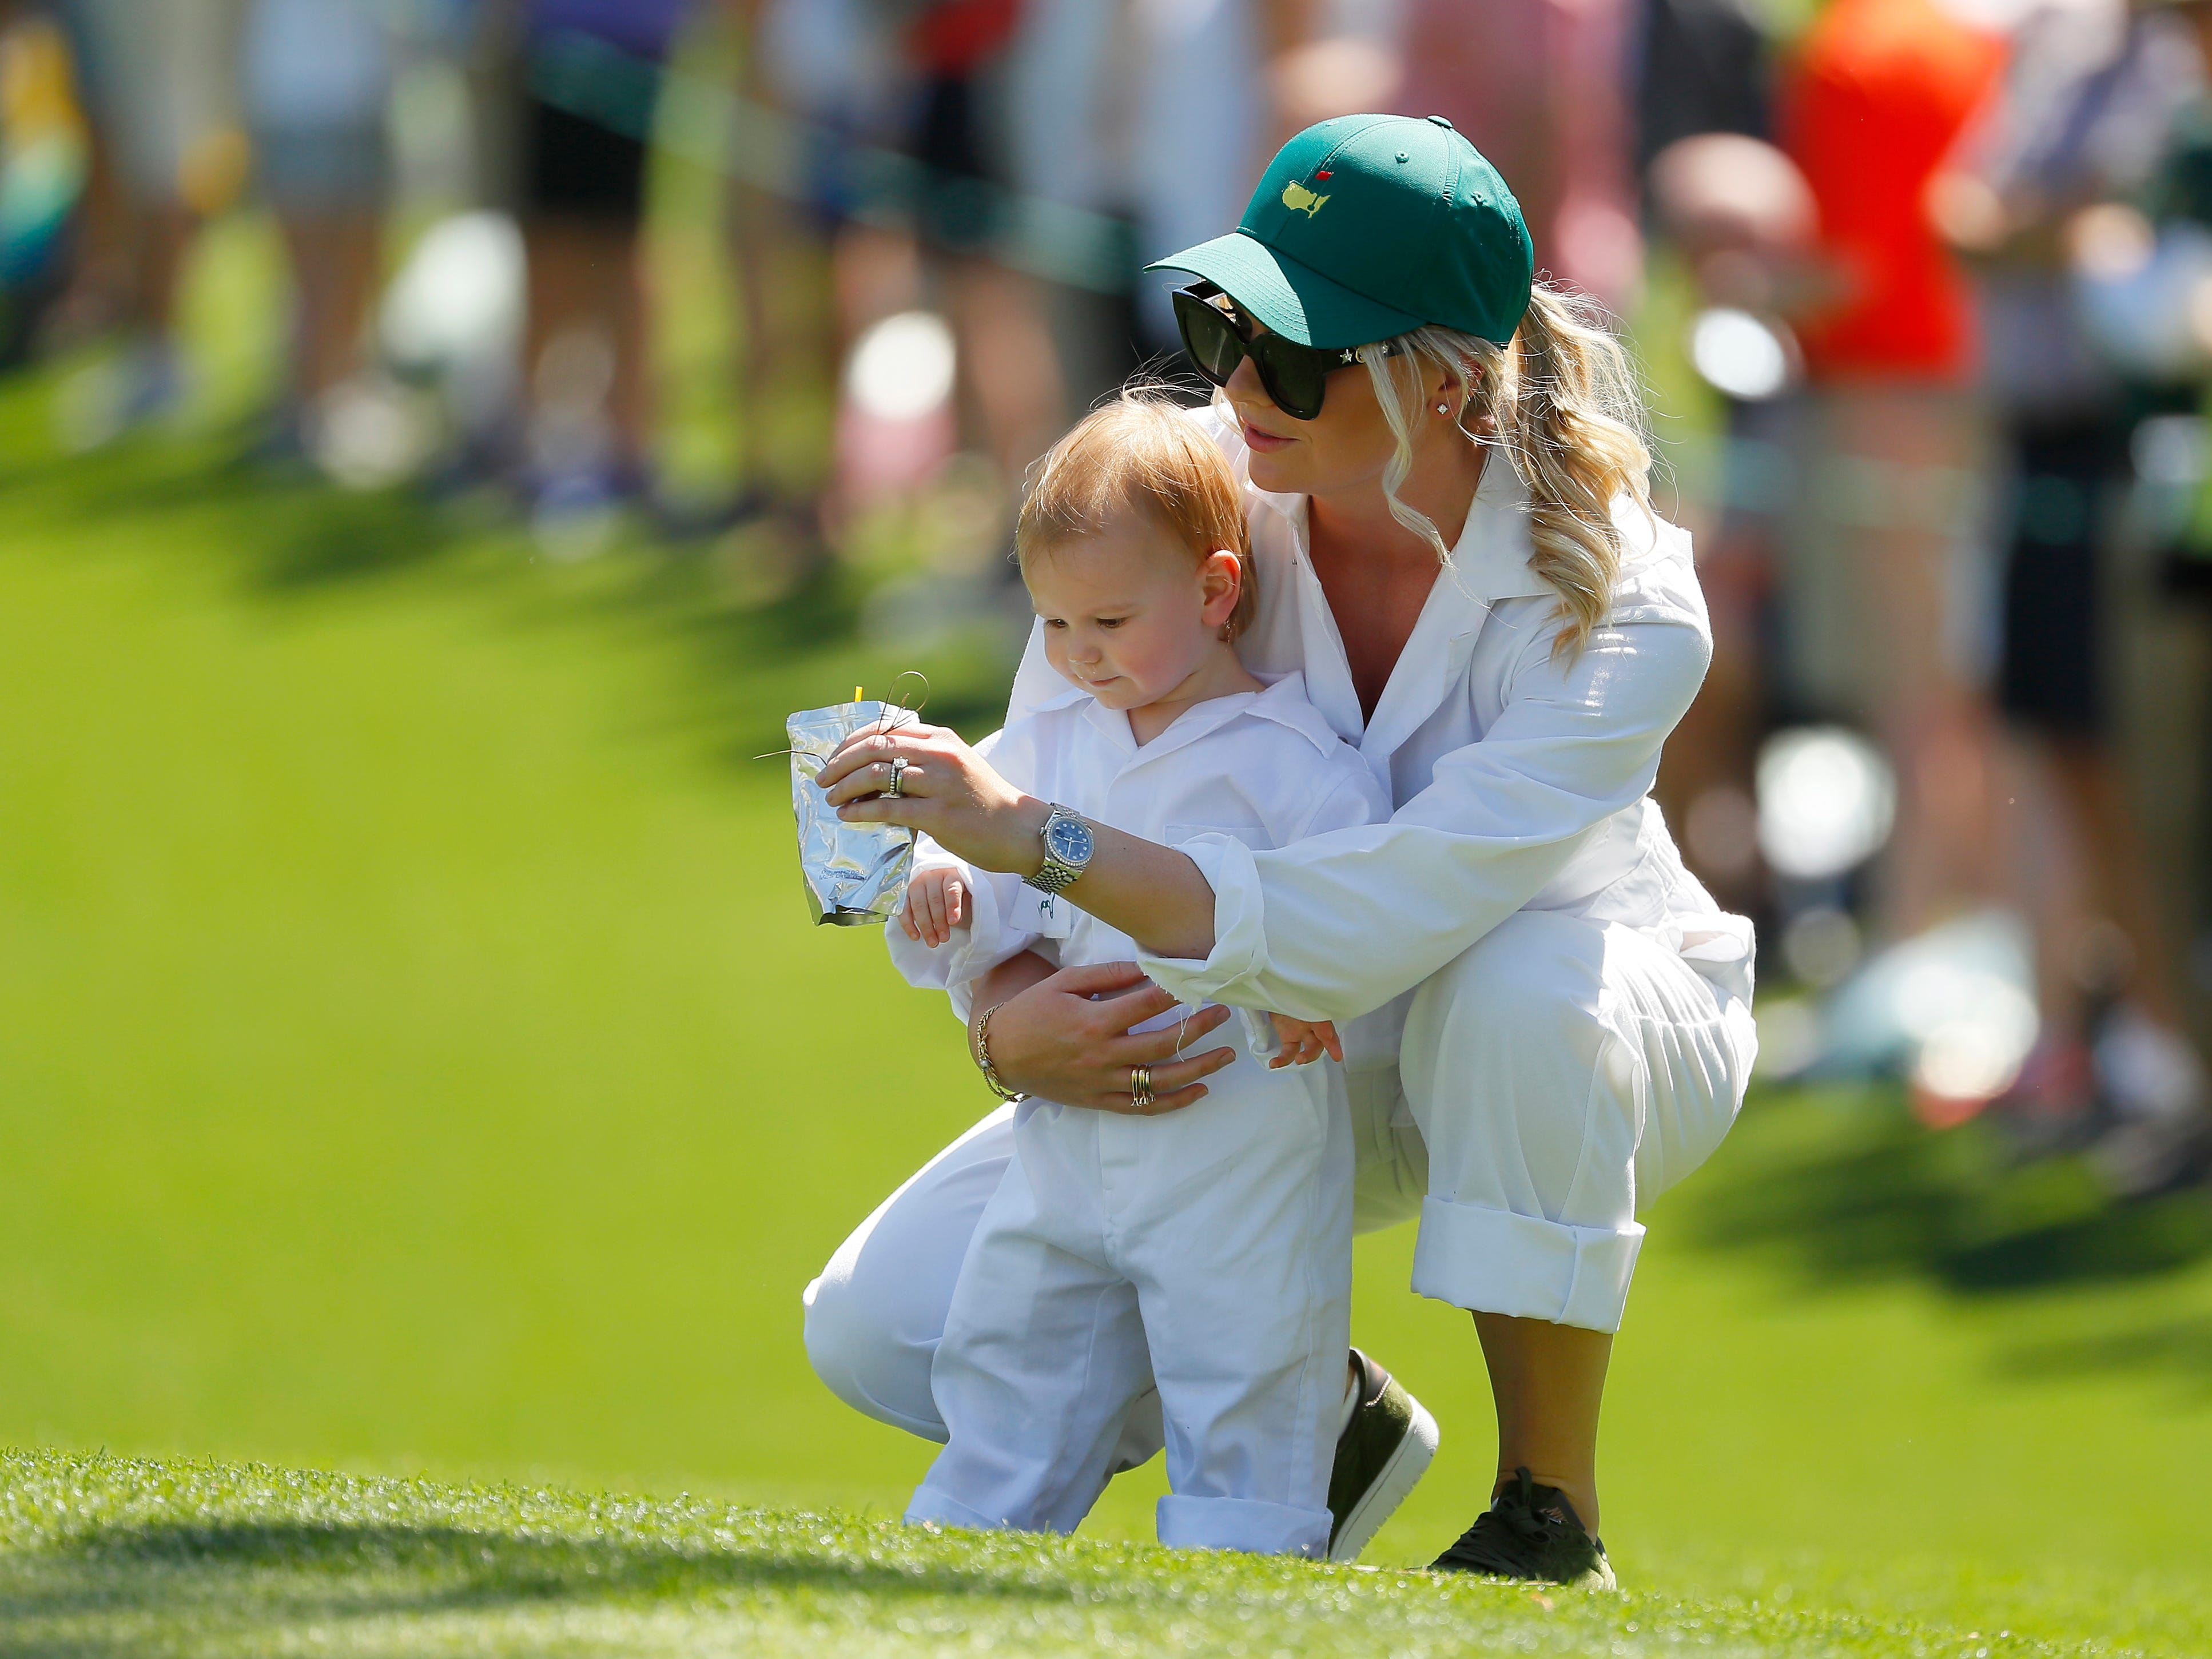 Henriette Friis, fiancee of Lucas Bjerregaard, looks on with their daughter Josephine.